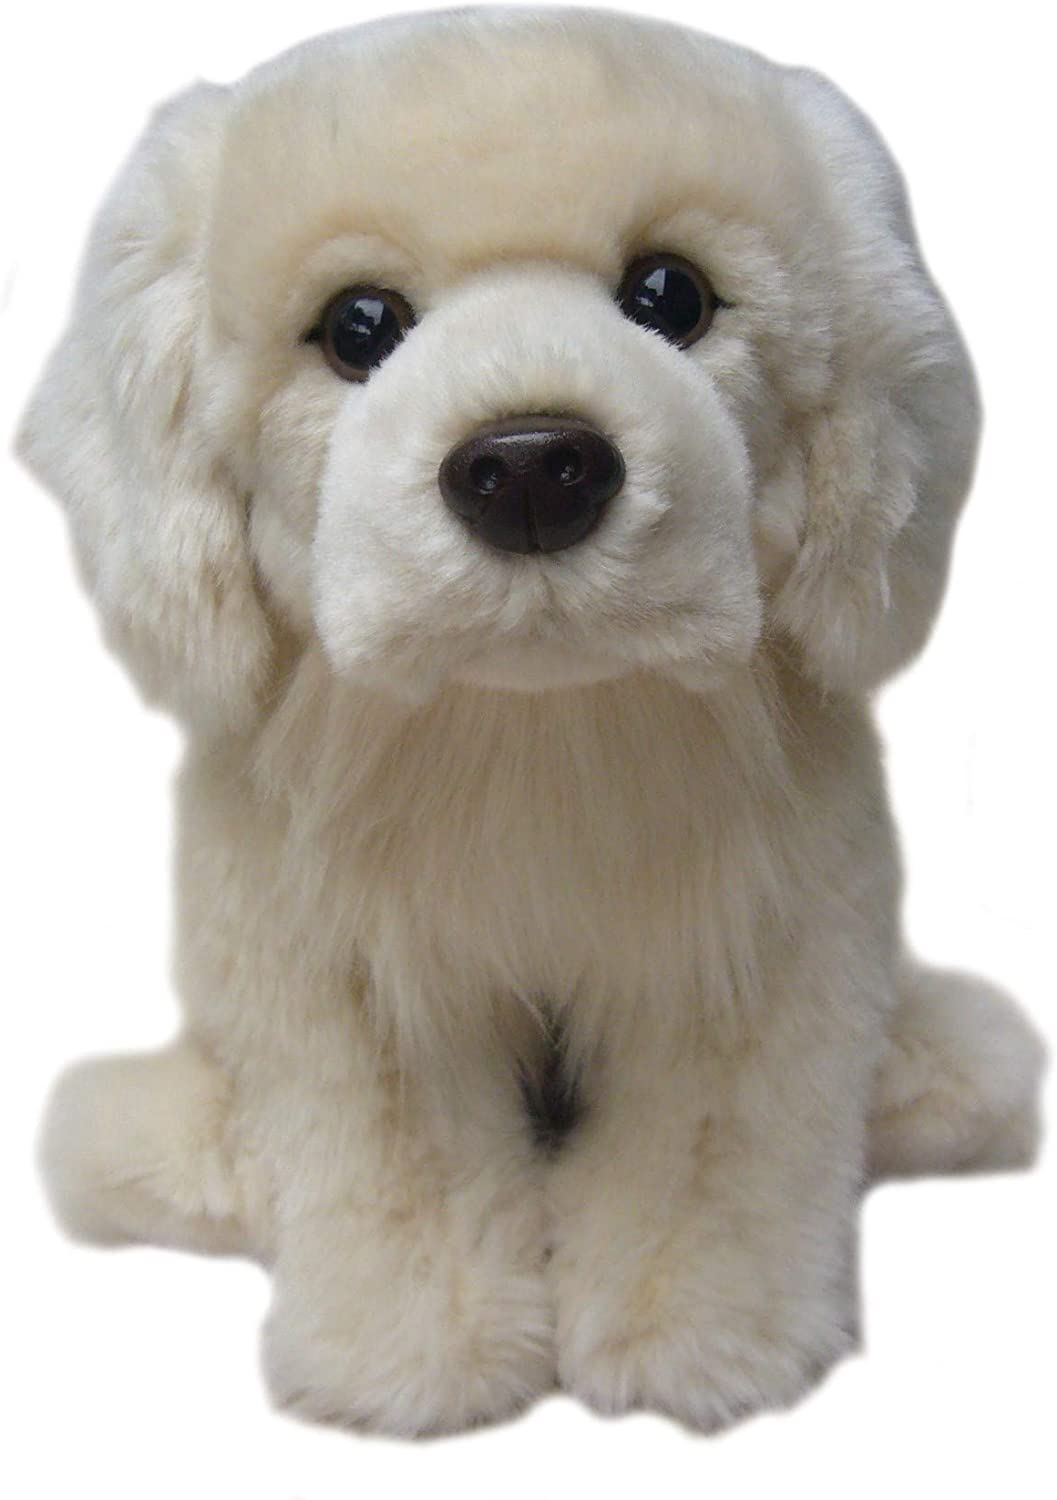 This Is Fine Dog Stuffed Animal, Amazon Com Sawley Fine Arts Faithful Friends Collectible Plush Soft Toy Dog Golden Retriever Floppy Soft Cuddly Toy 12 Inch Toys Games